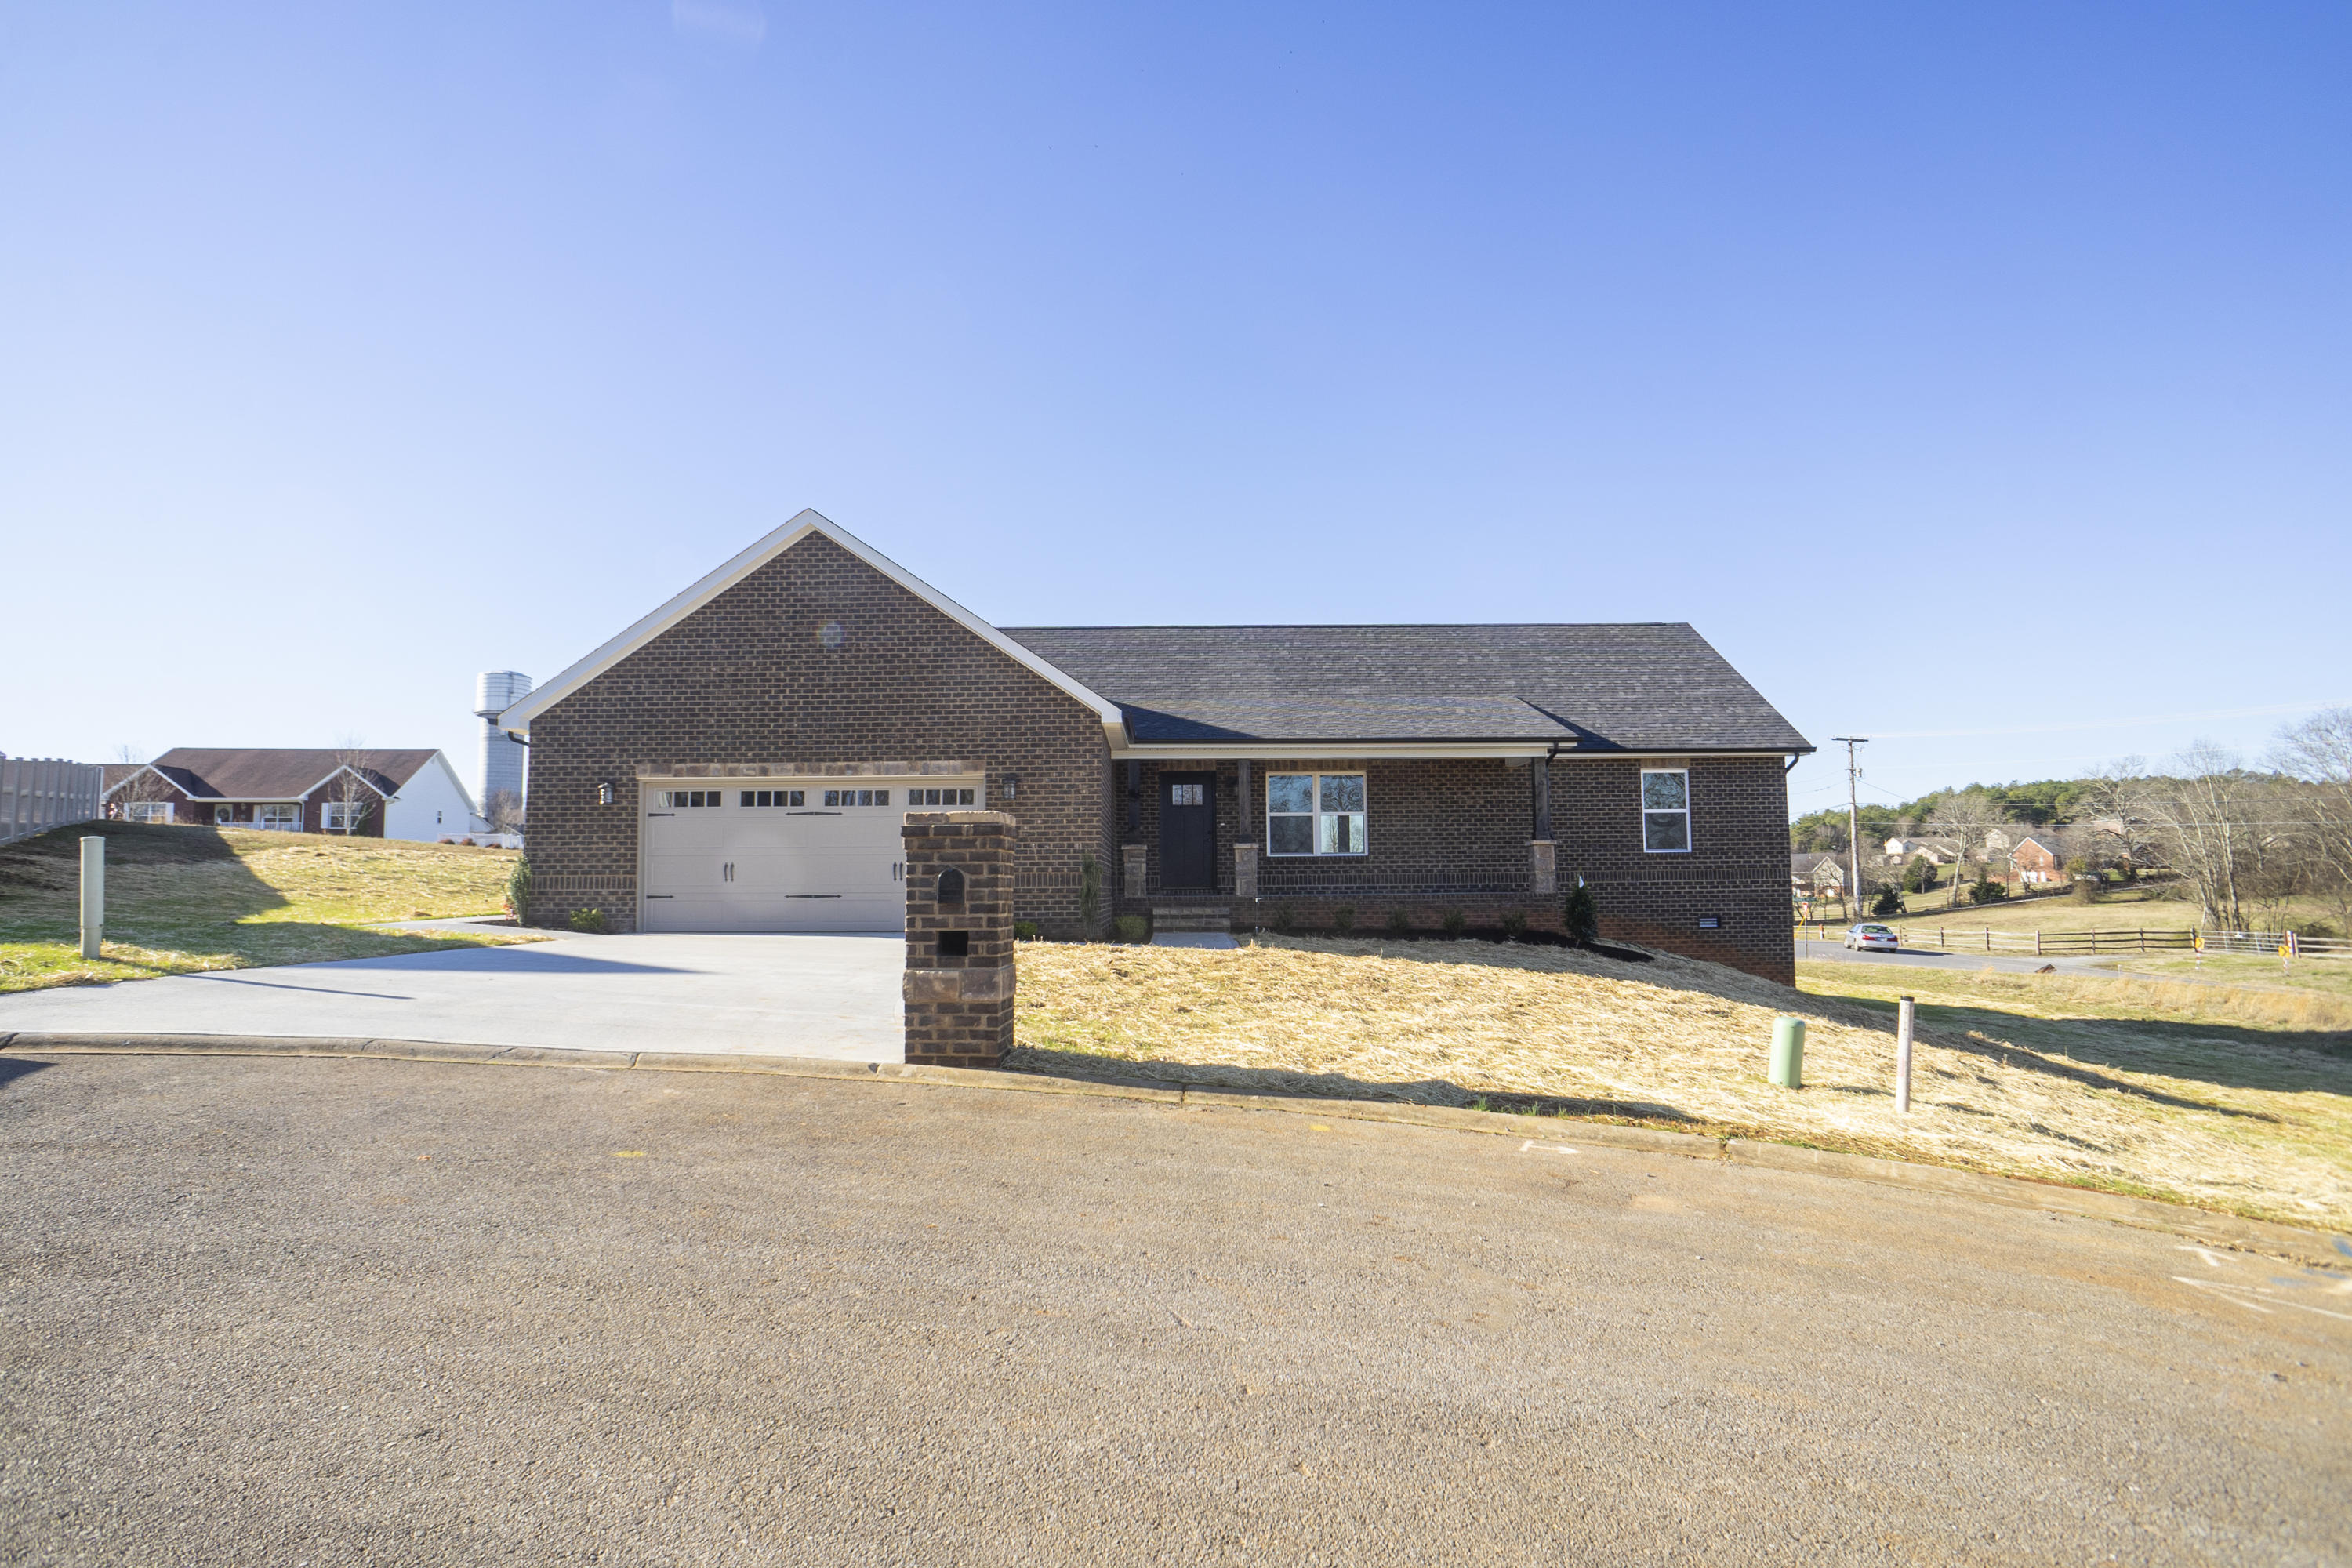 1519 Rosewood Dr Drive Preview Image 1